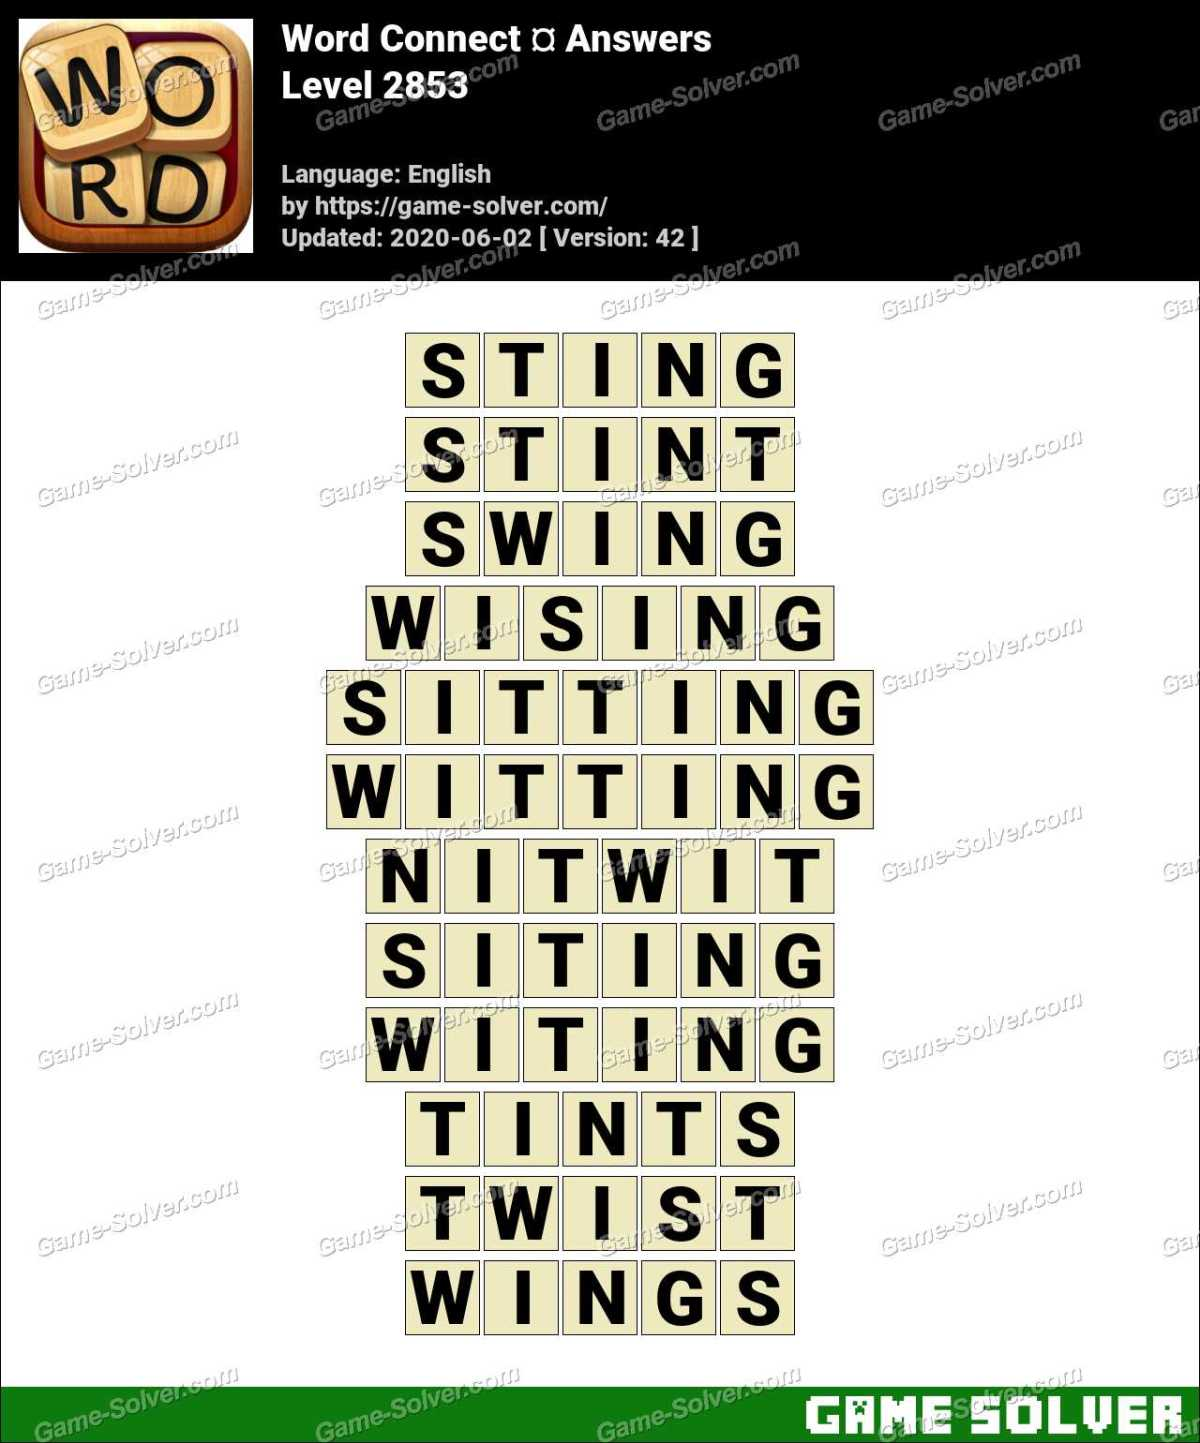 Word Connect Level 2853 Answers